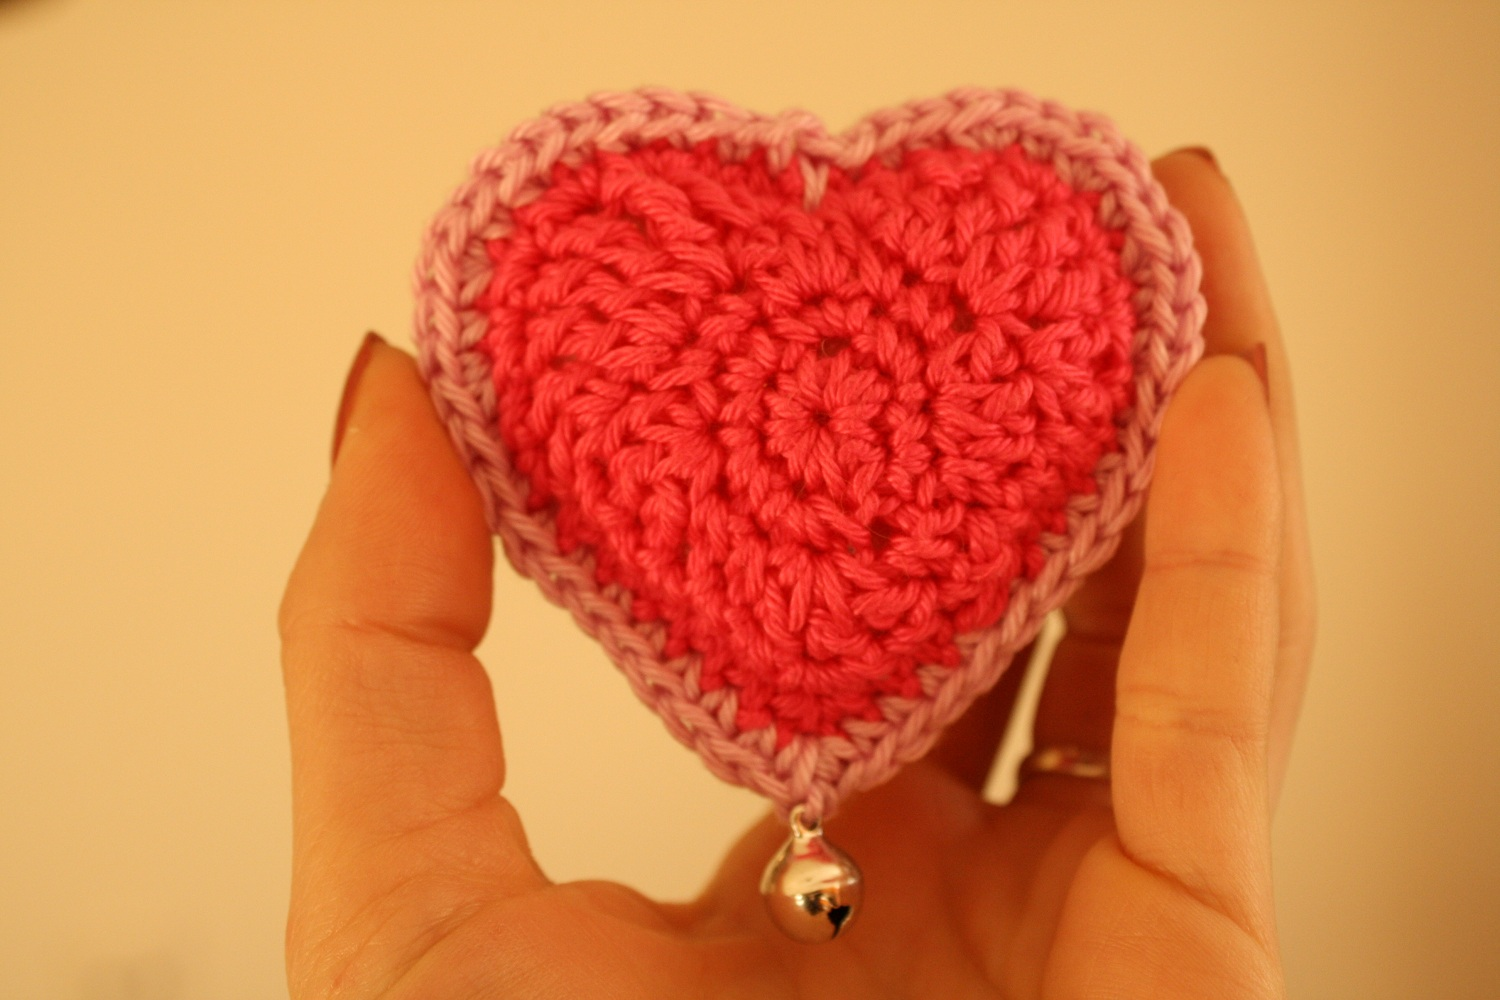 Crocheting Stuff : Busy fingers, busy life...: Pattern: Little Stuffed Crocheted Heart